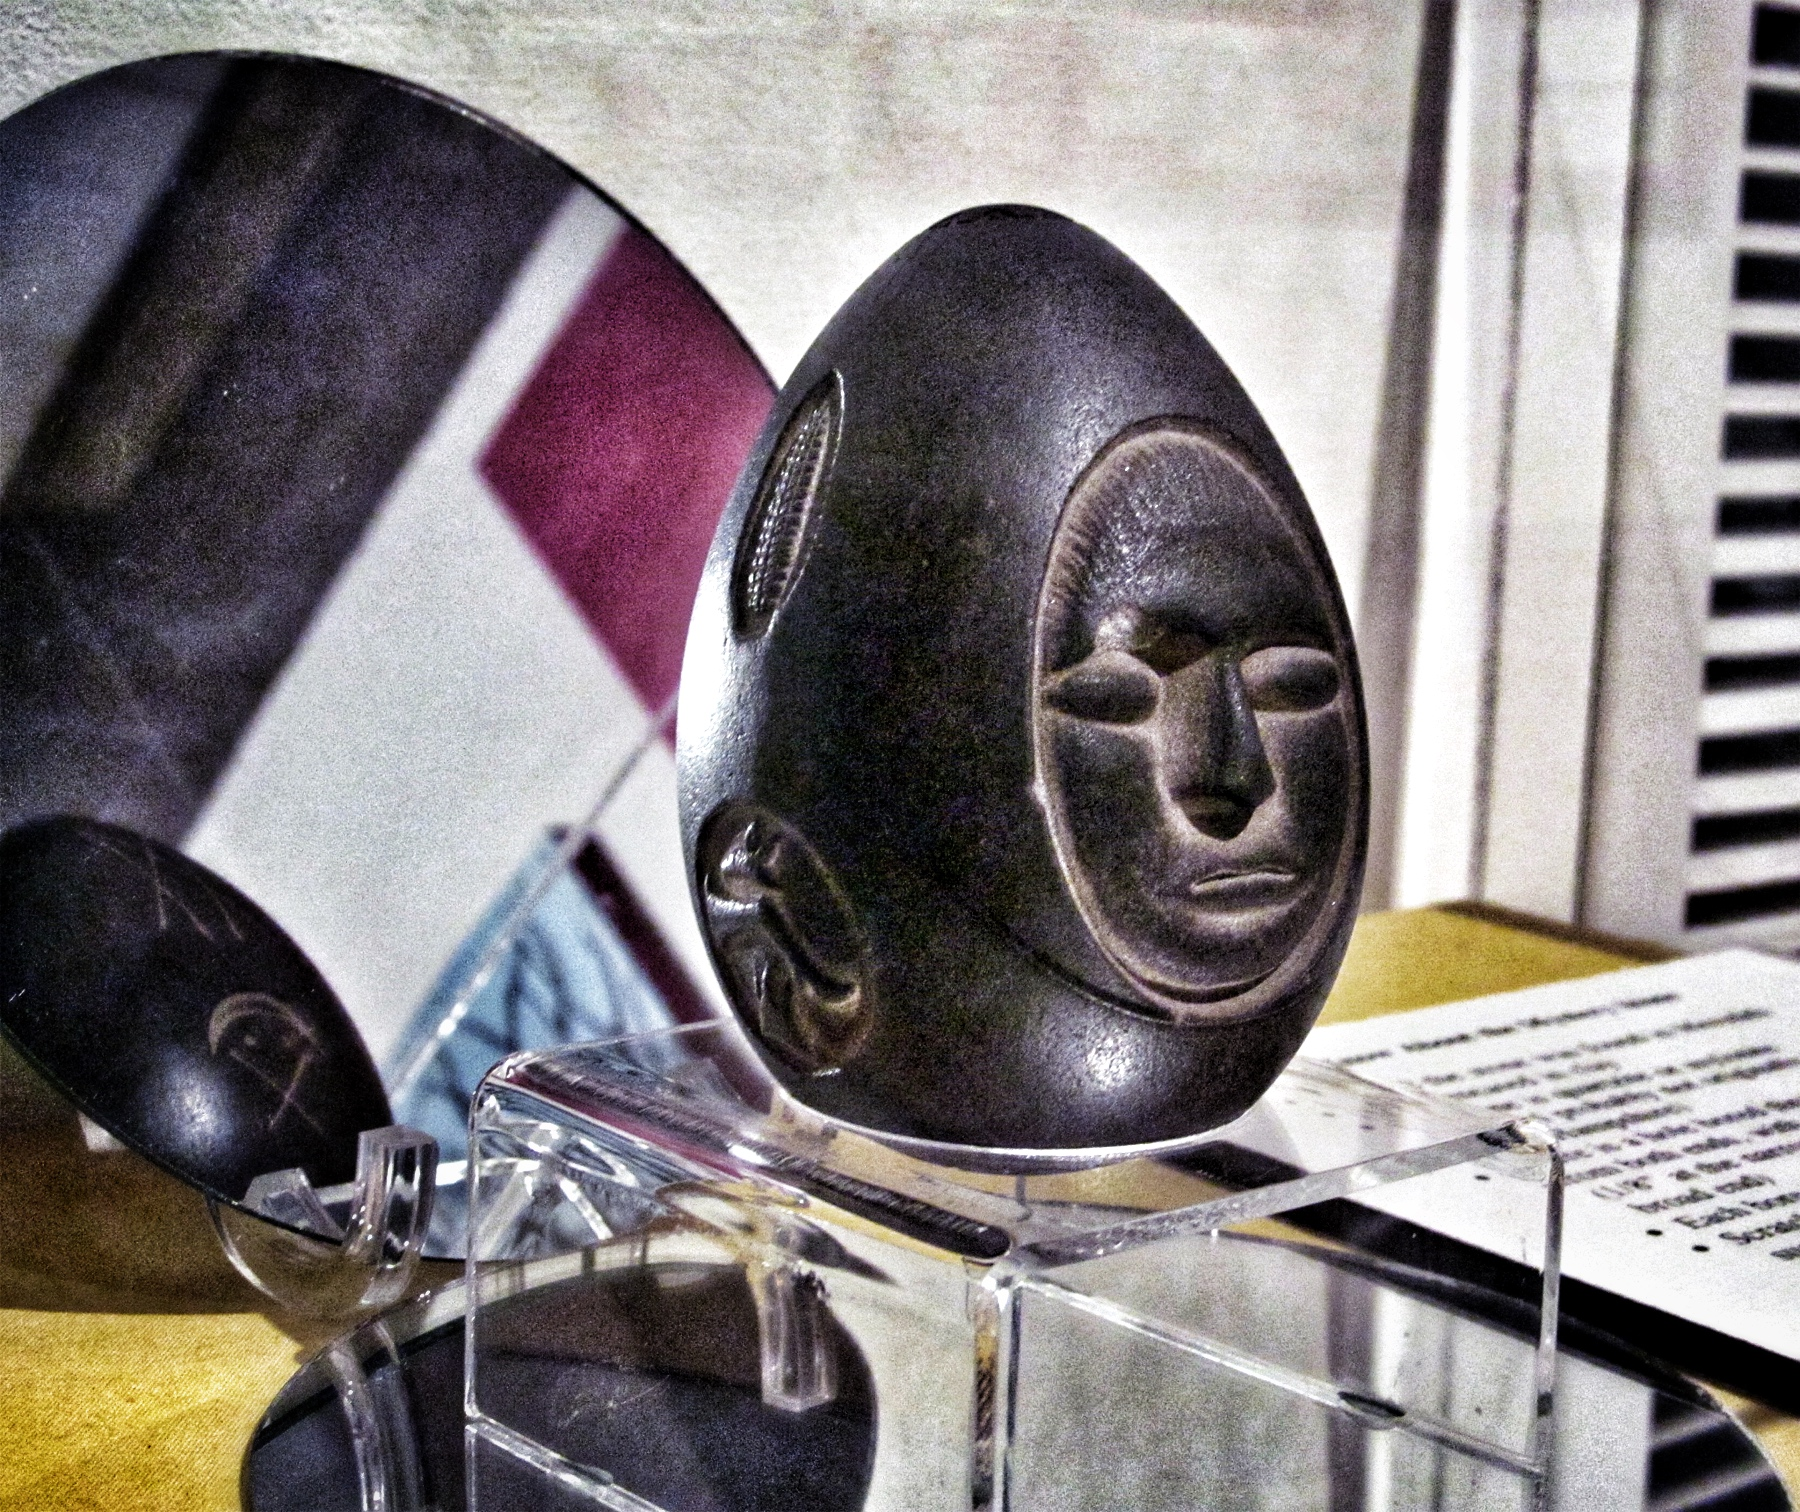 The Lake Winnipesaukee Mystery Stone on display at the New Hampshire Historical Society museum in Concord.